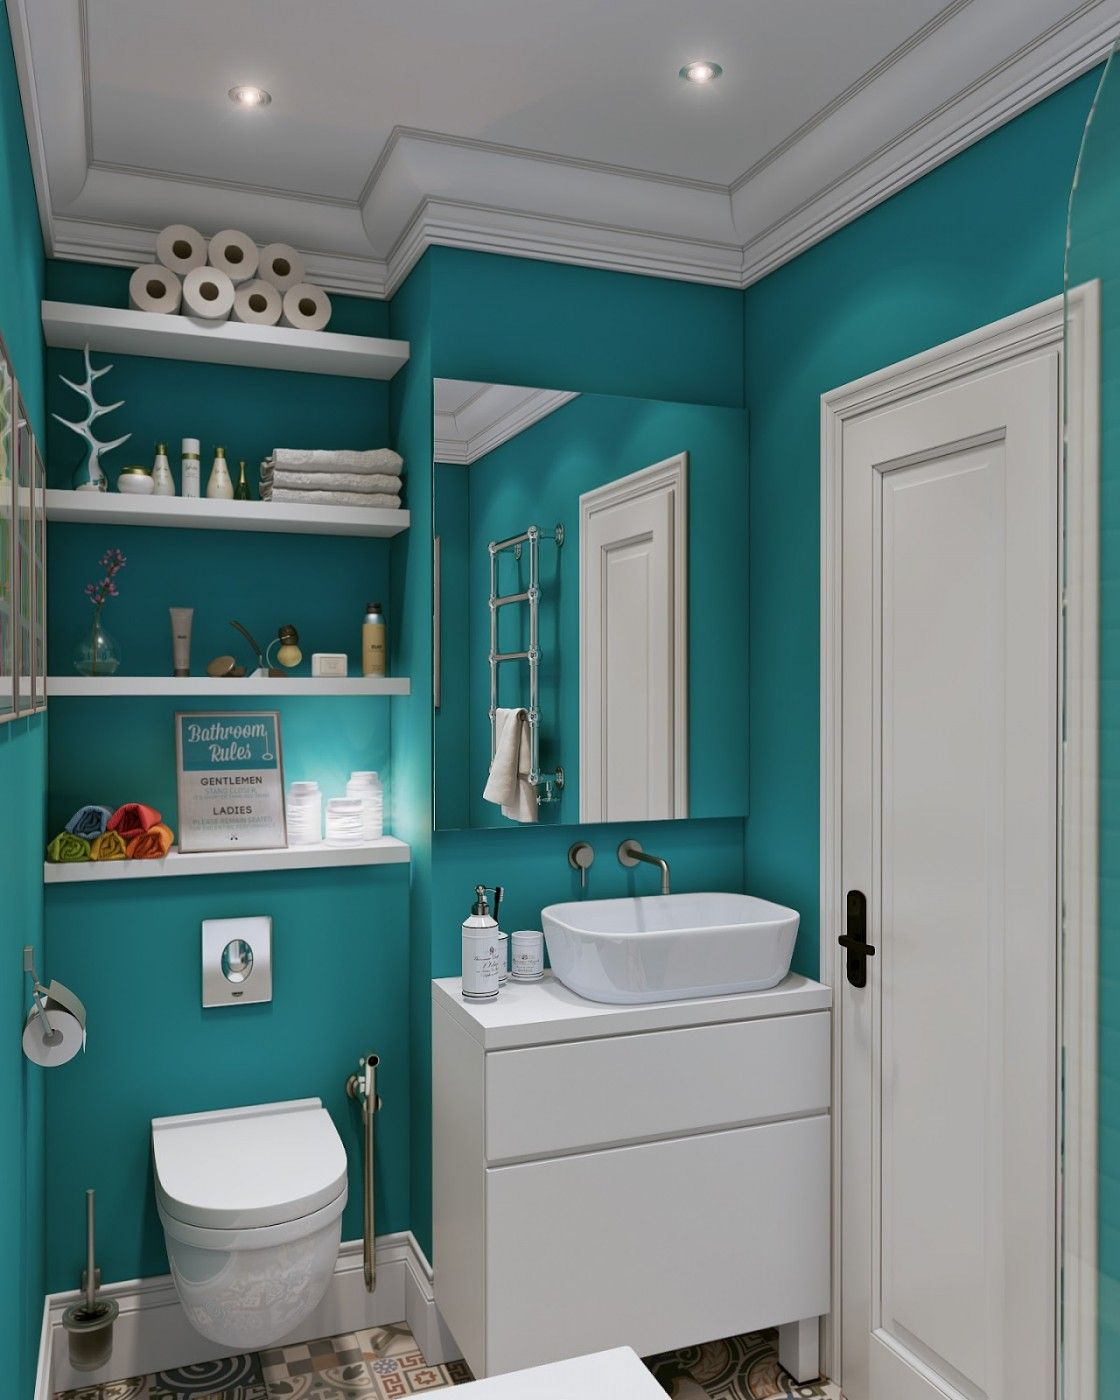 Contemporary Teal Bathroom Wall Color Scheme With Wooden Shelves Above  Toilet Asu2026